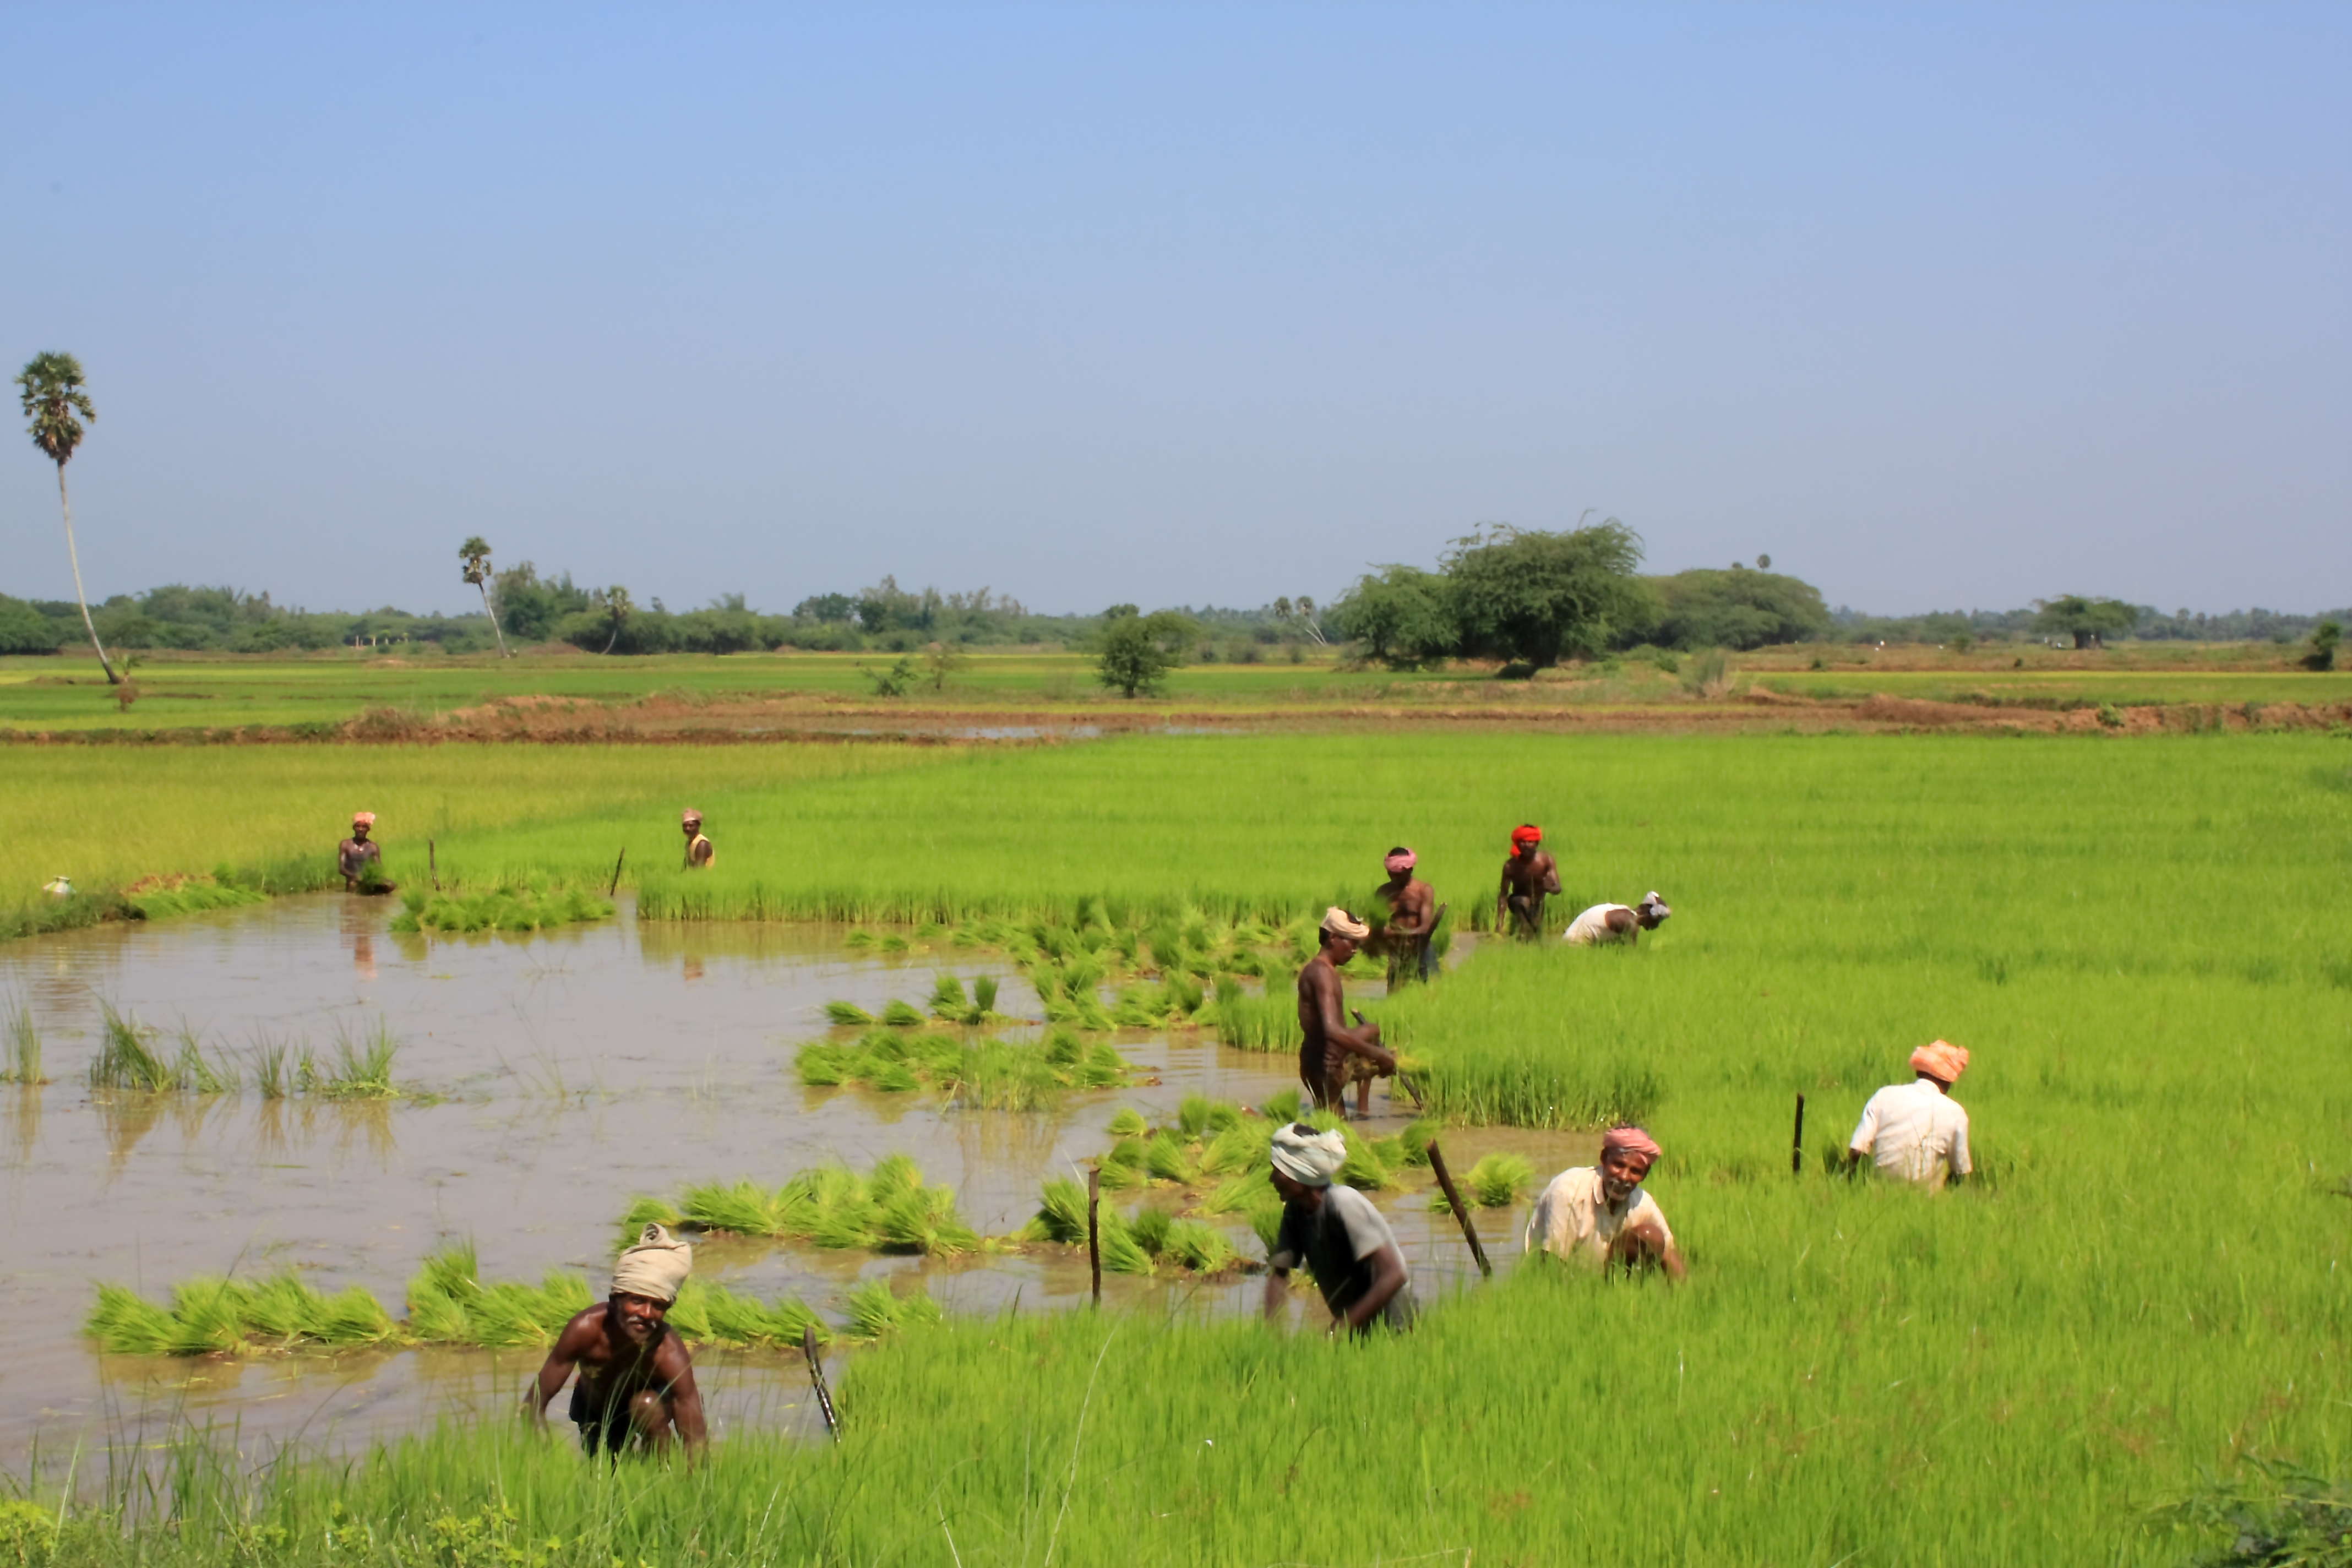 Paddy field in Thanjavur District